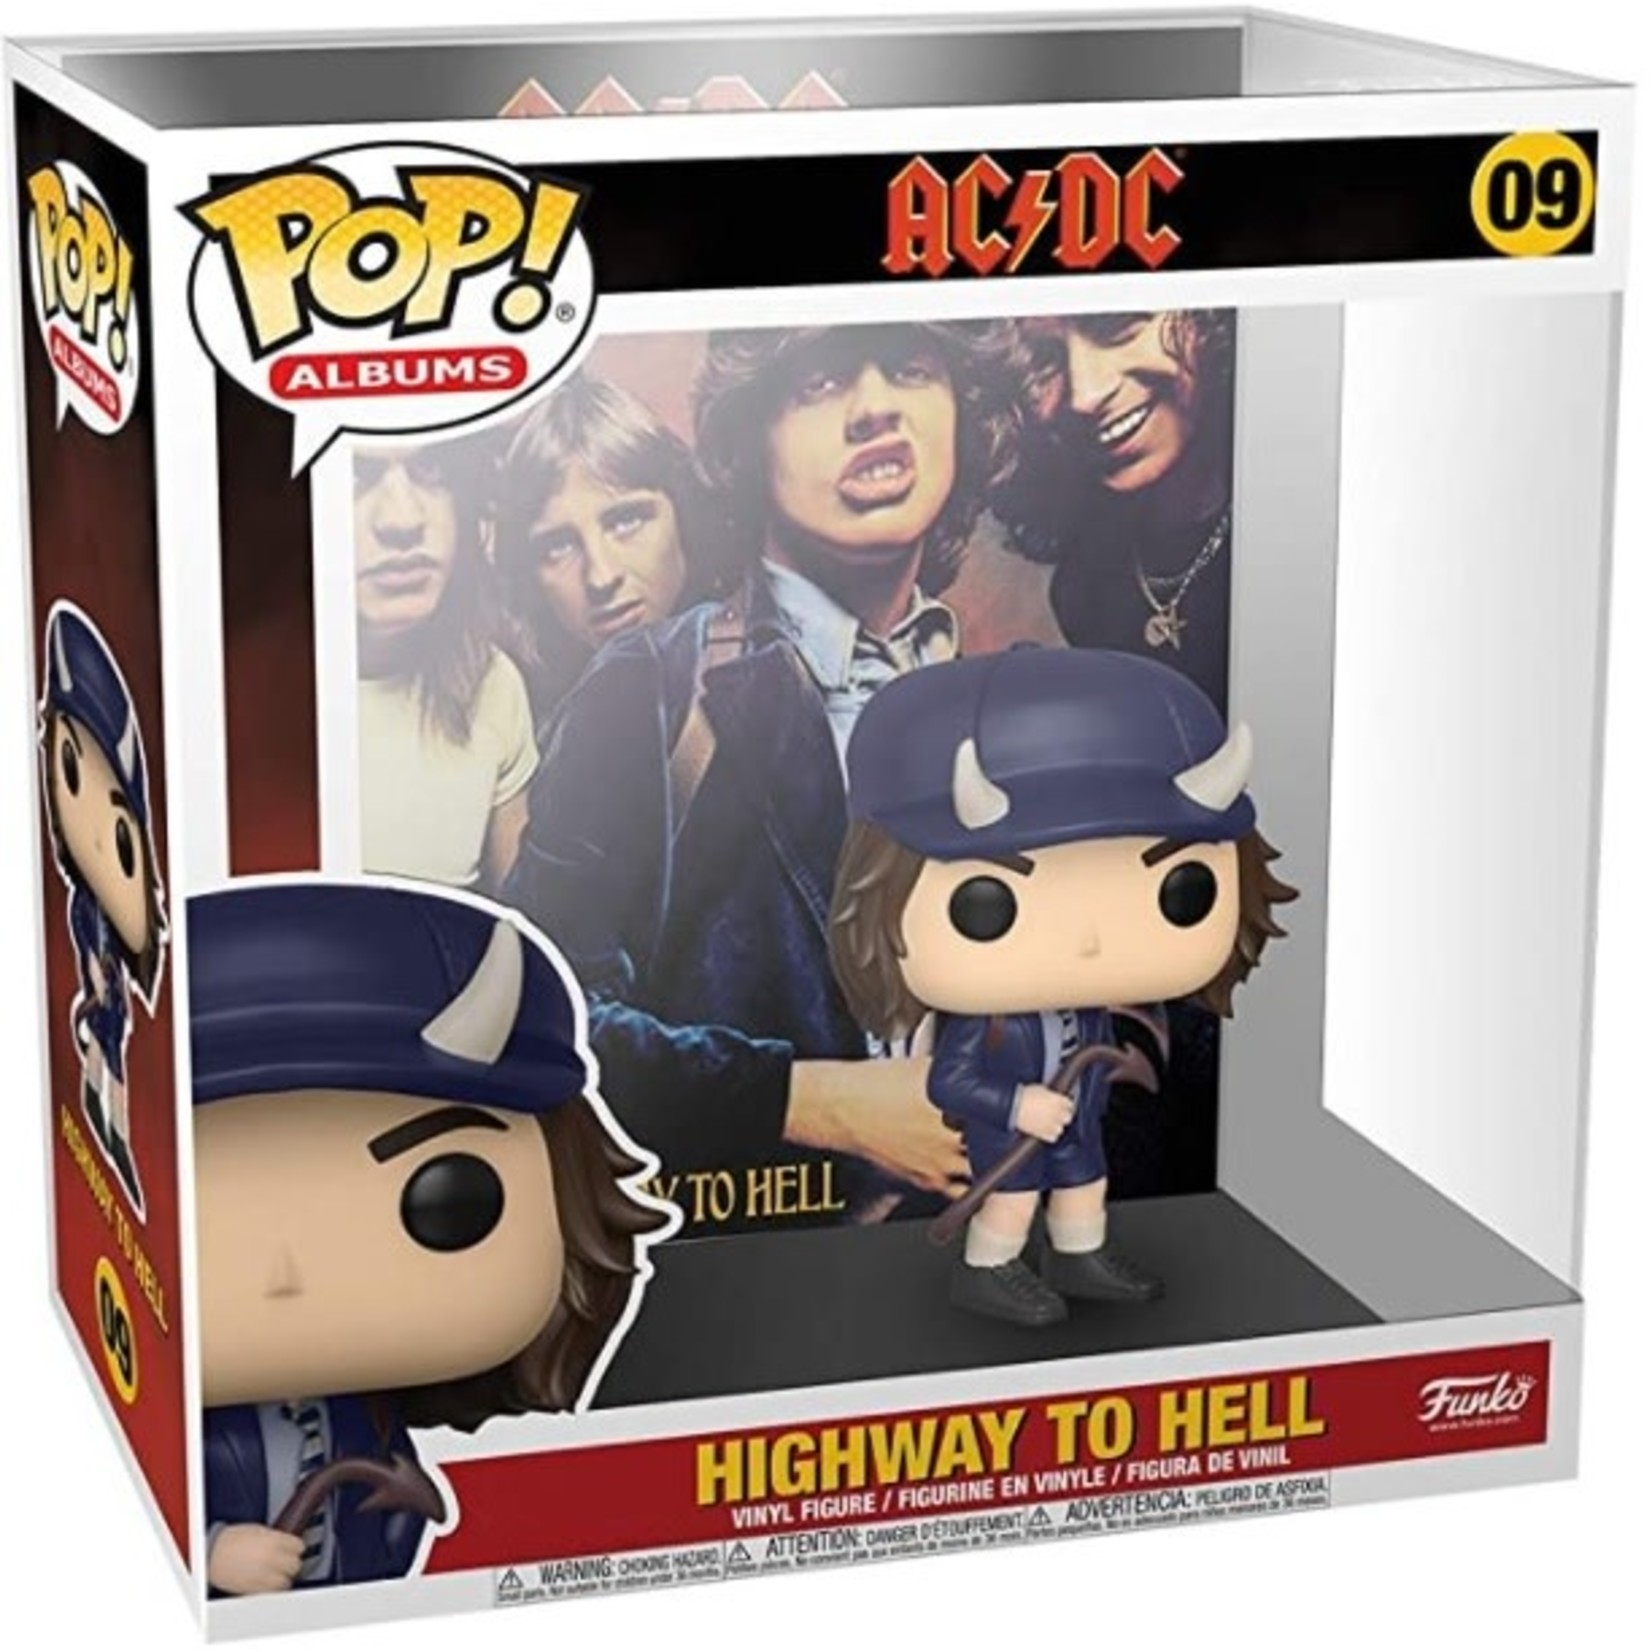 Funko Pop! POP! Albums AC/DC - Highway to Hell